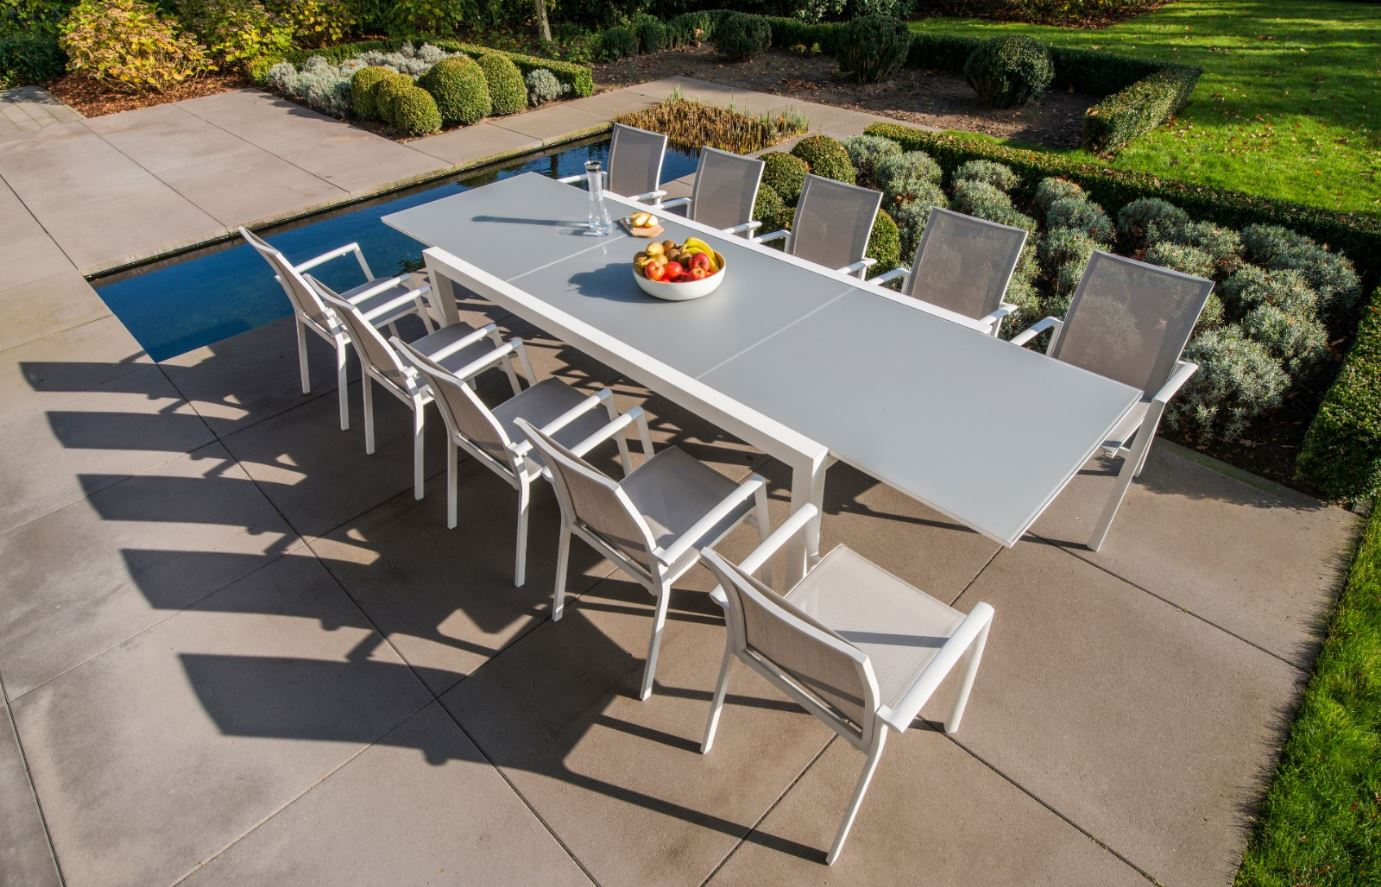 Jati Kebon - Outdoor extendable tables and chairs